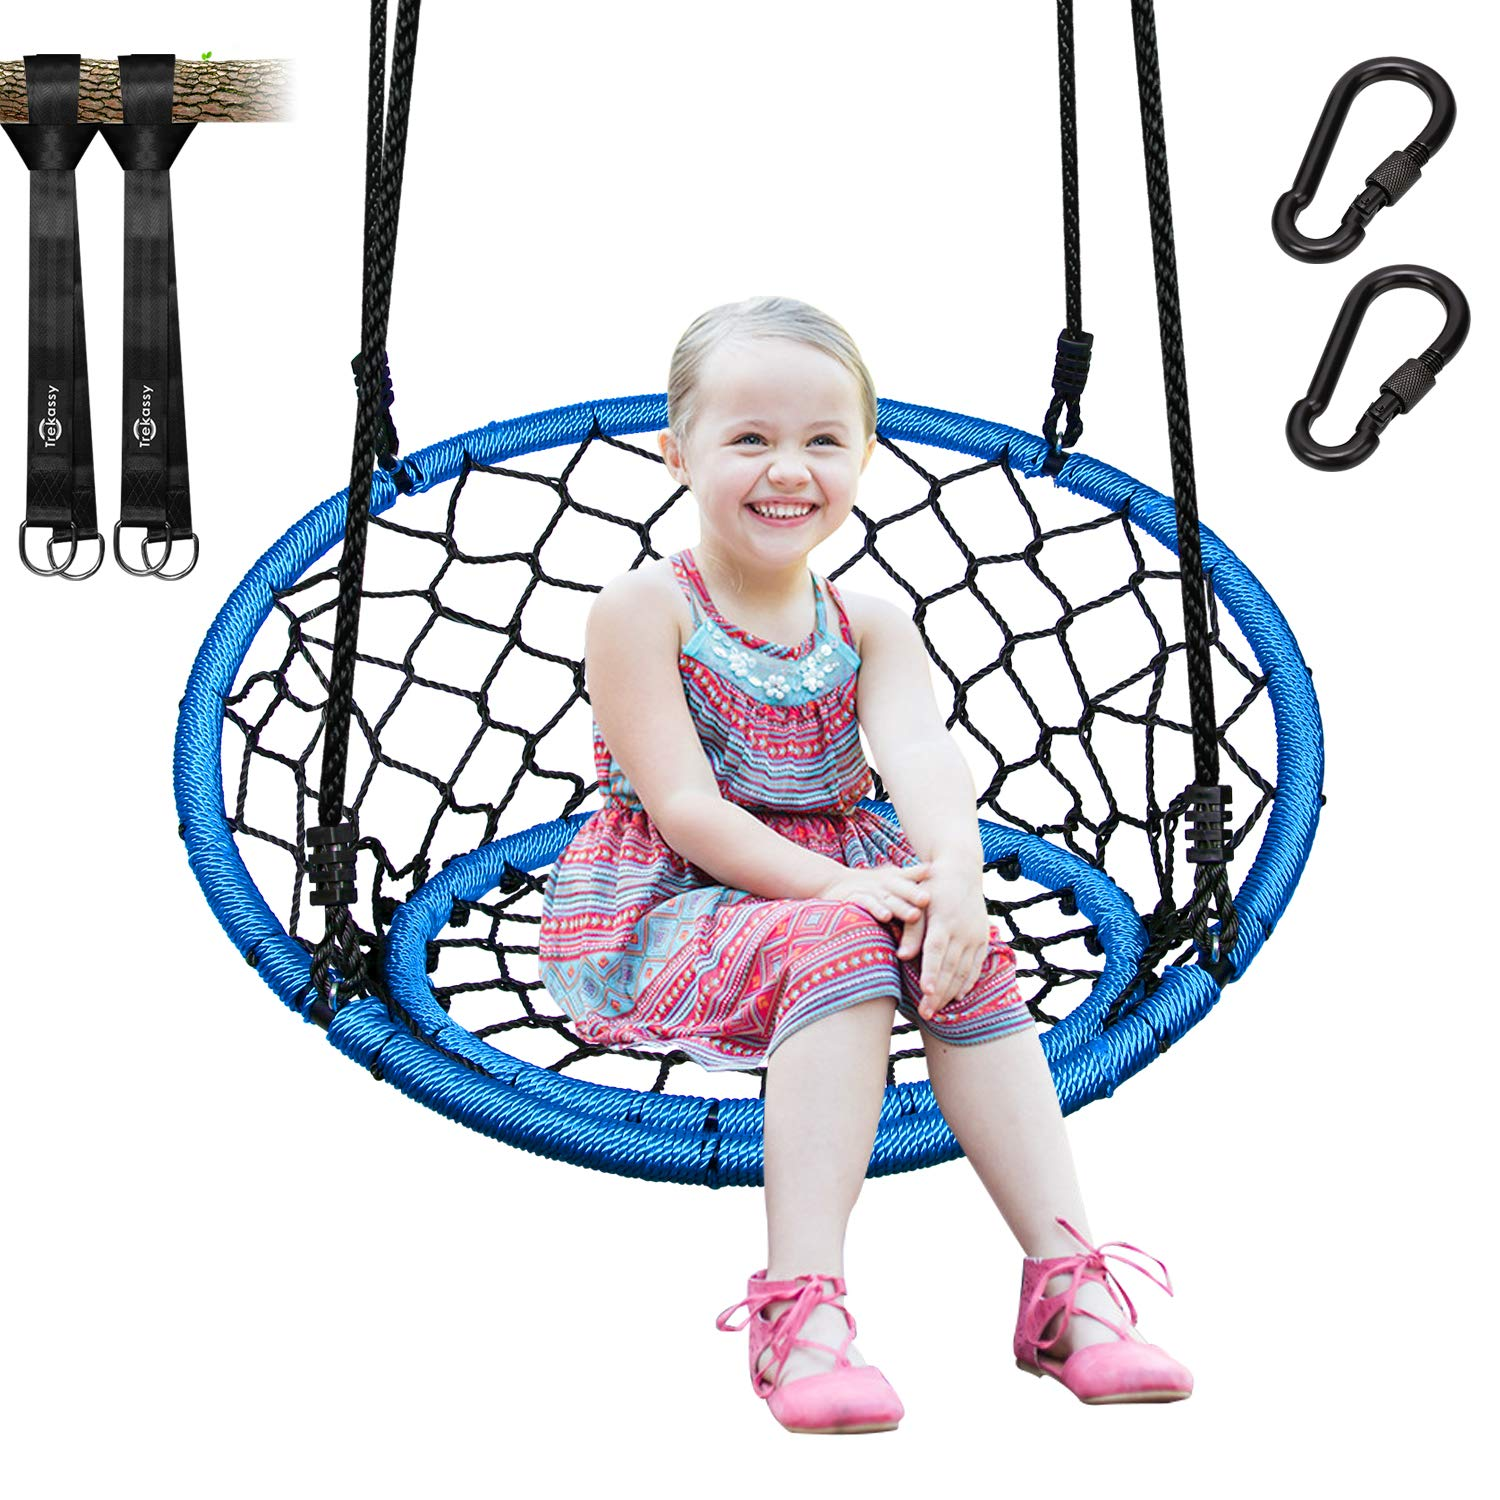 Trekassy 440lb Spider Web Chair Swing 35 Inch for Adults Kids with 2 Tree Hanging Straps and Adjustable Ropes by Trekassy